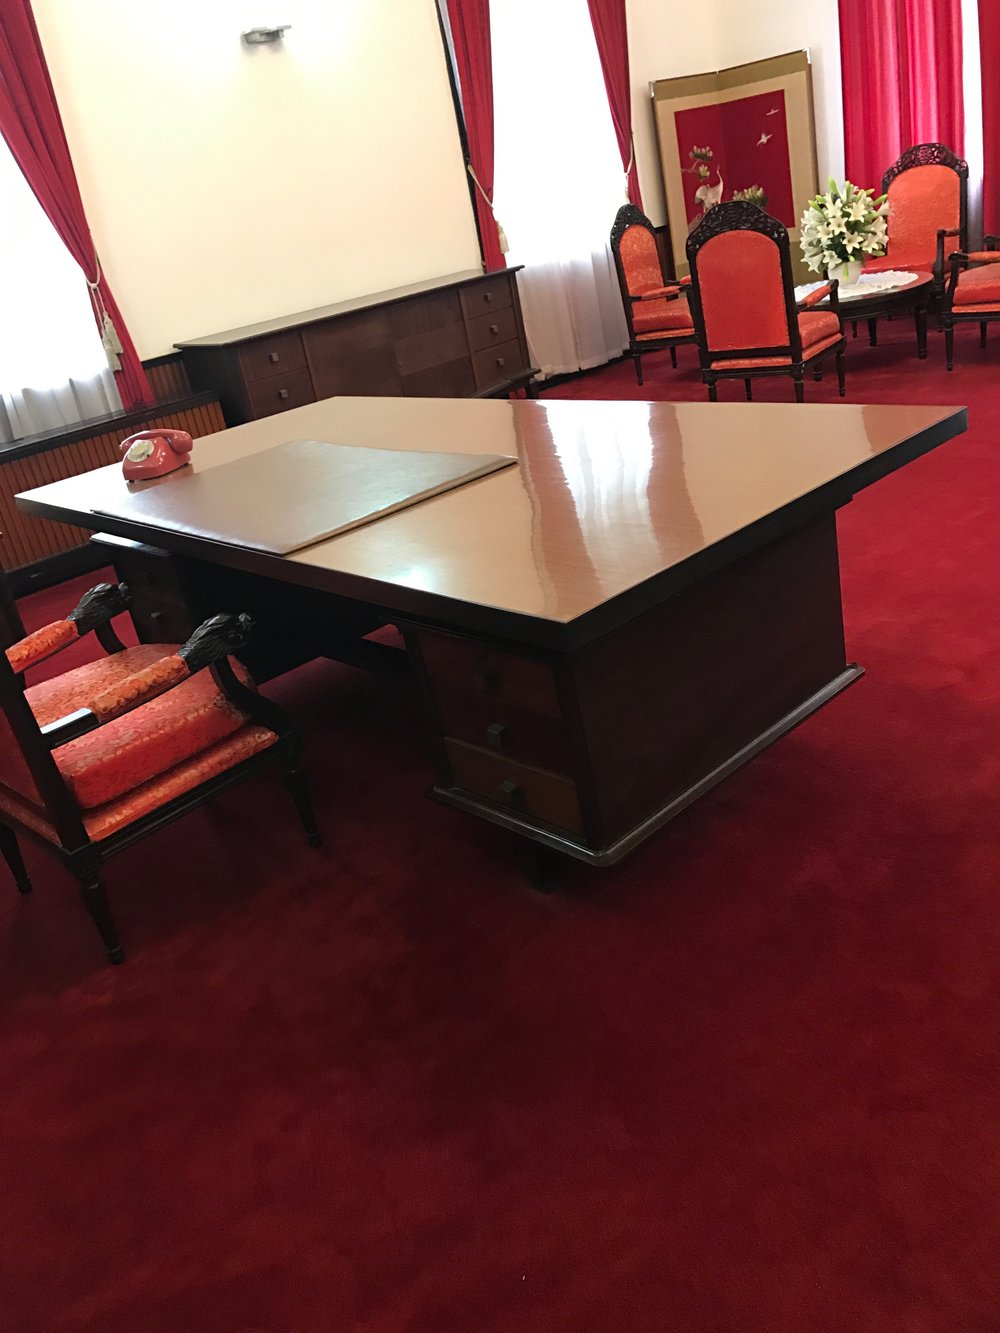 Desk of the President of South Vietnam